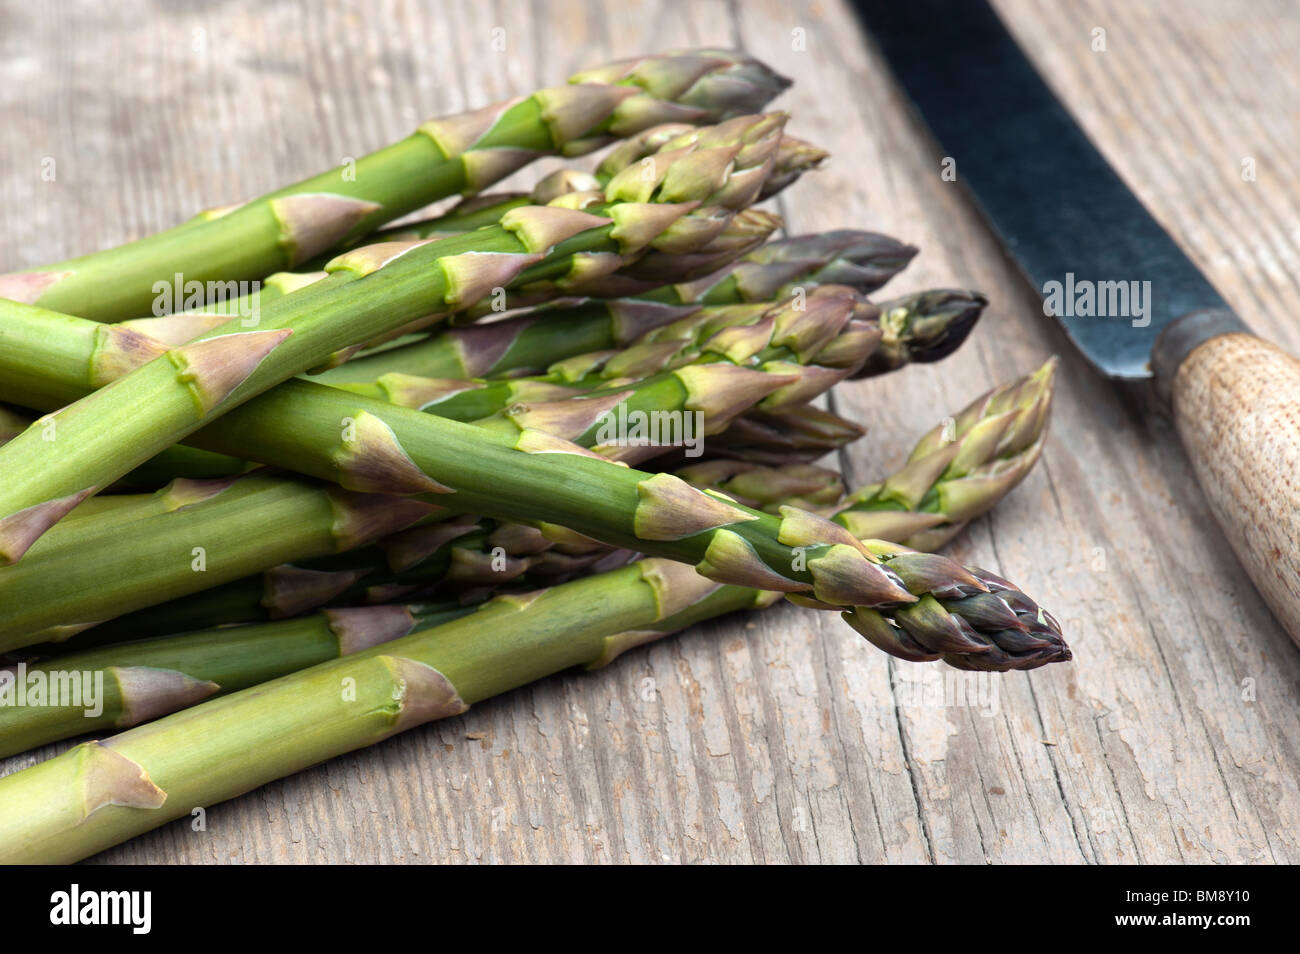 Fresh Asparagus Laid On A Wooden Kitchen Table - Stock Image